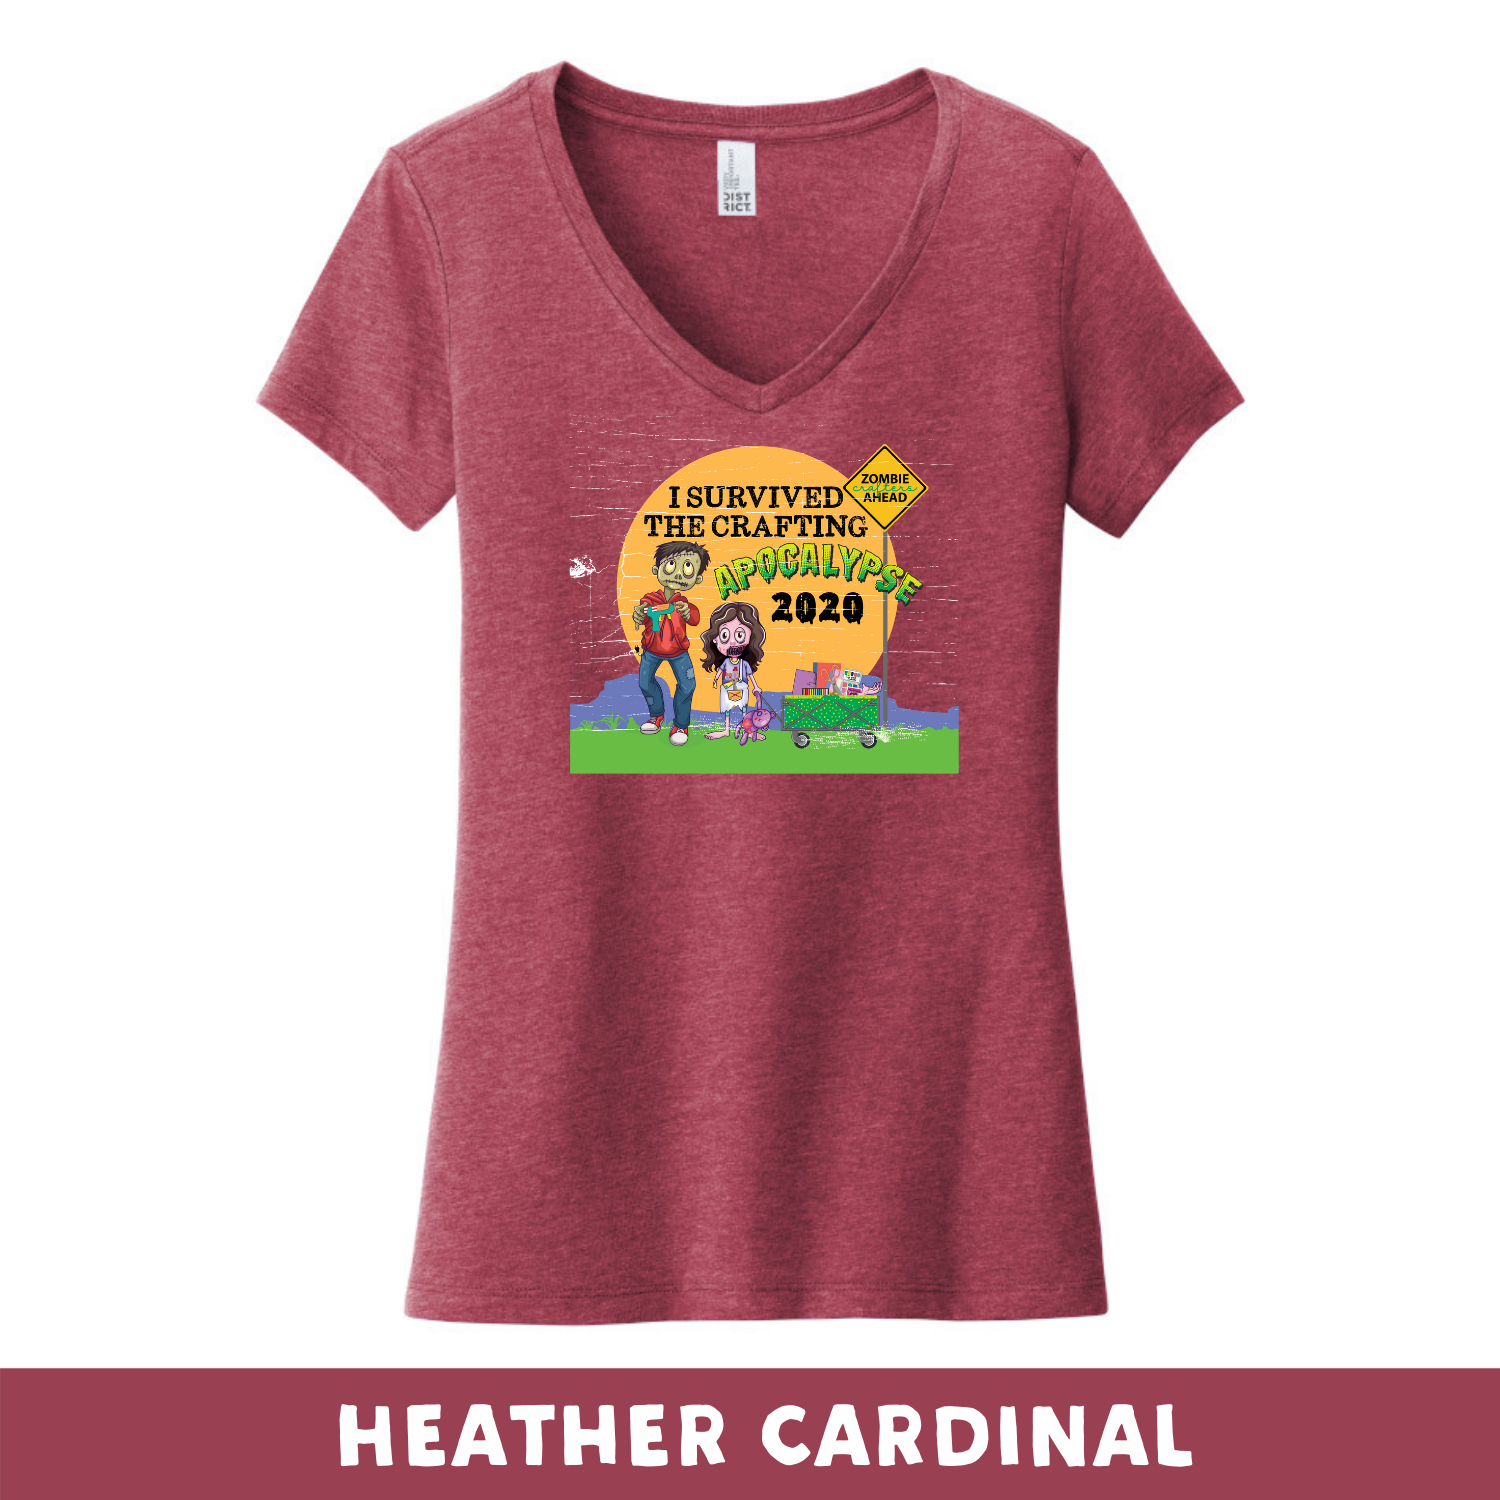 Heather Cardinal - Woman's Cut V-Neck - Heathered & Frosts - I Survived The 2020 Crafting Apocalypse